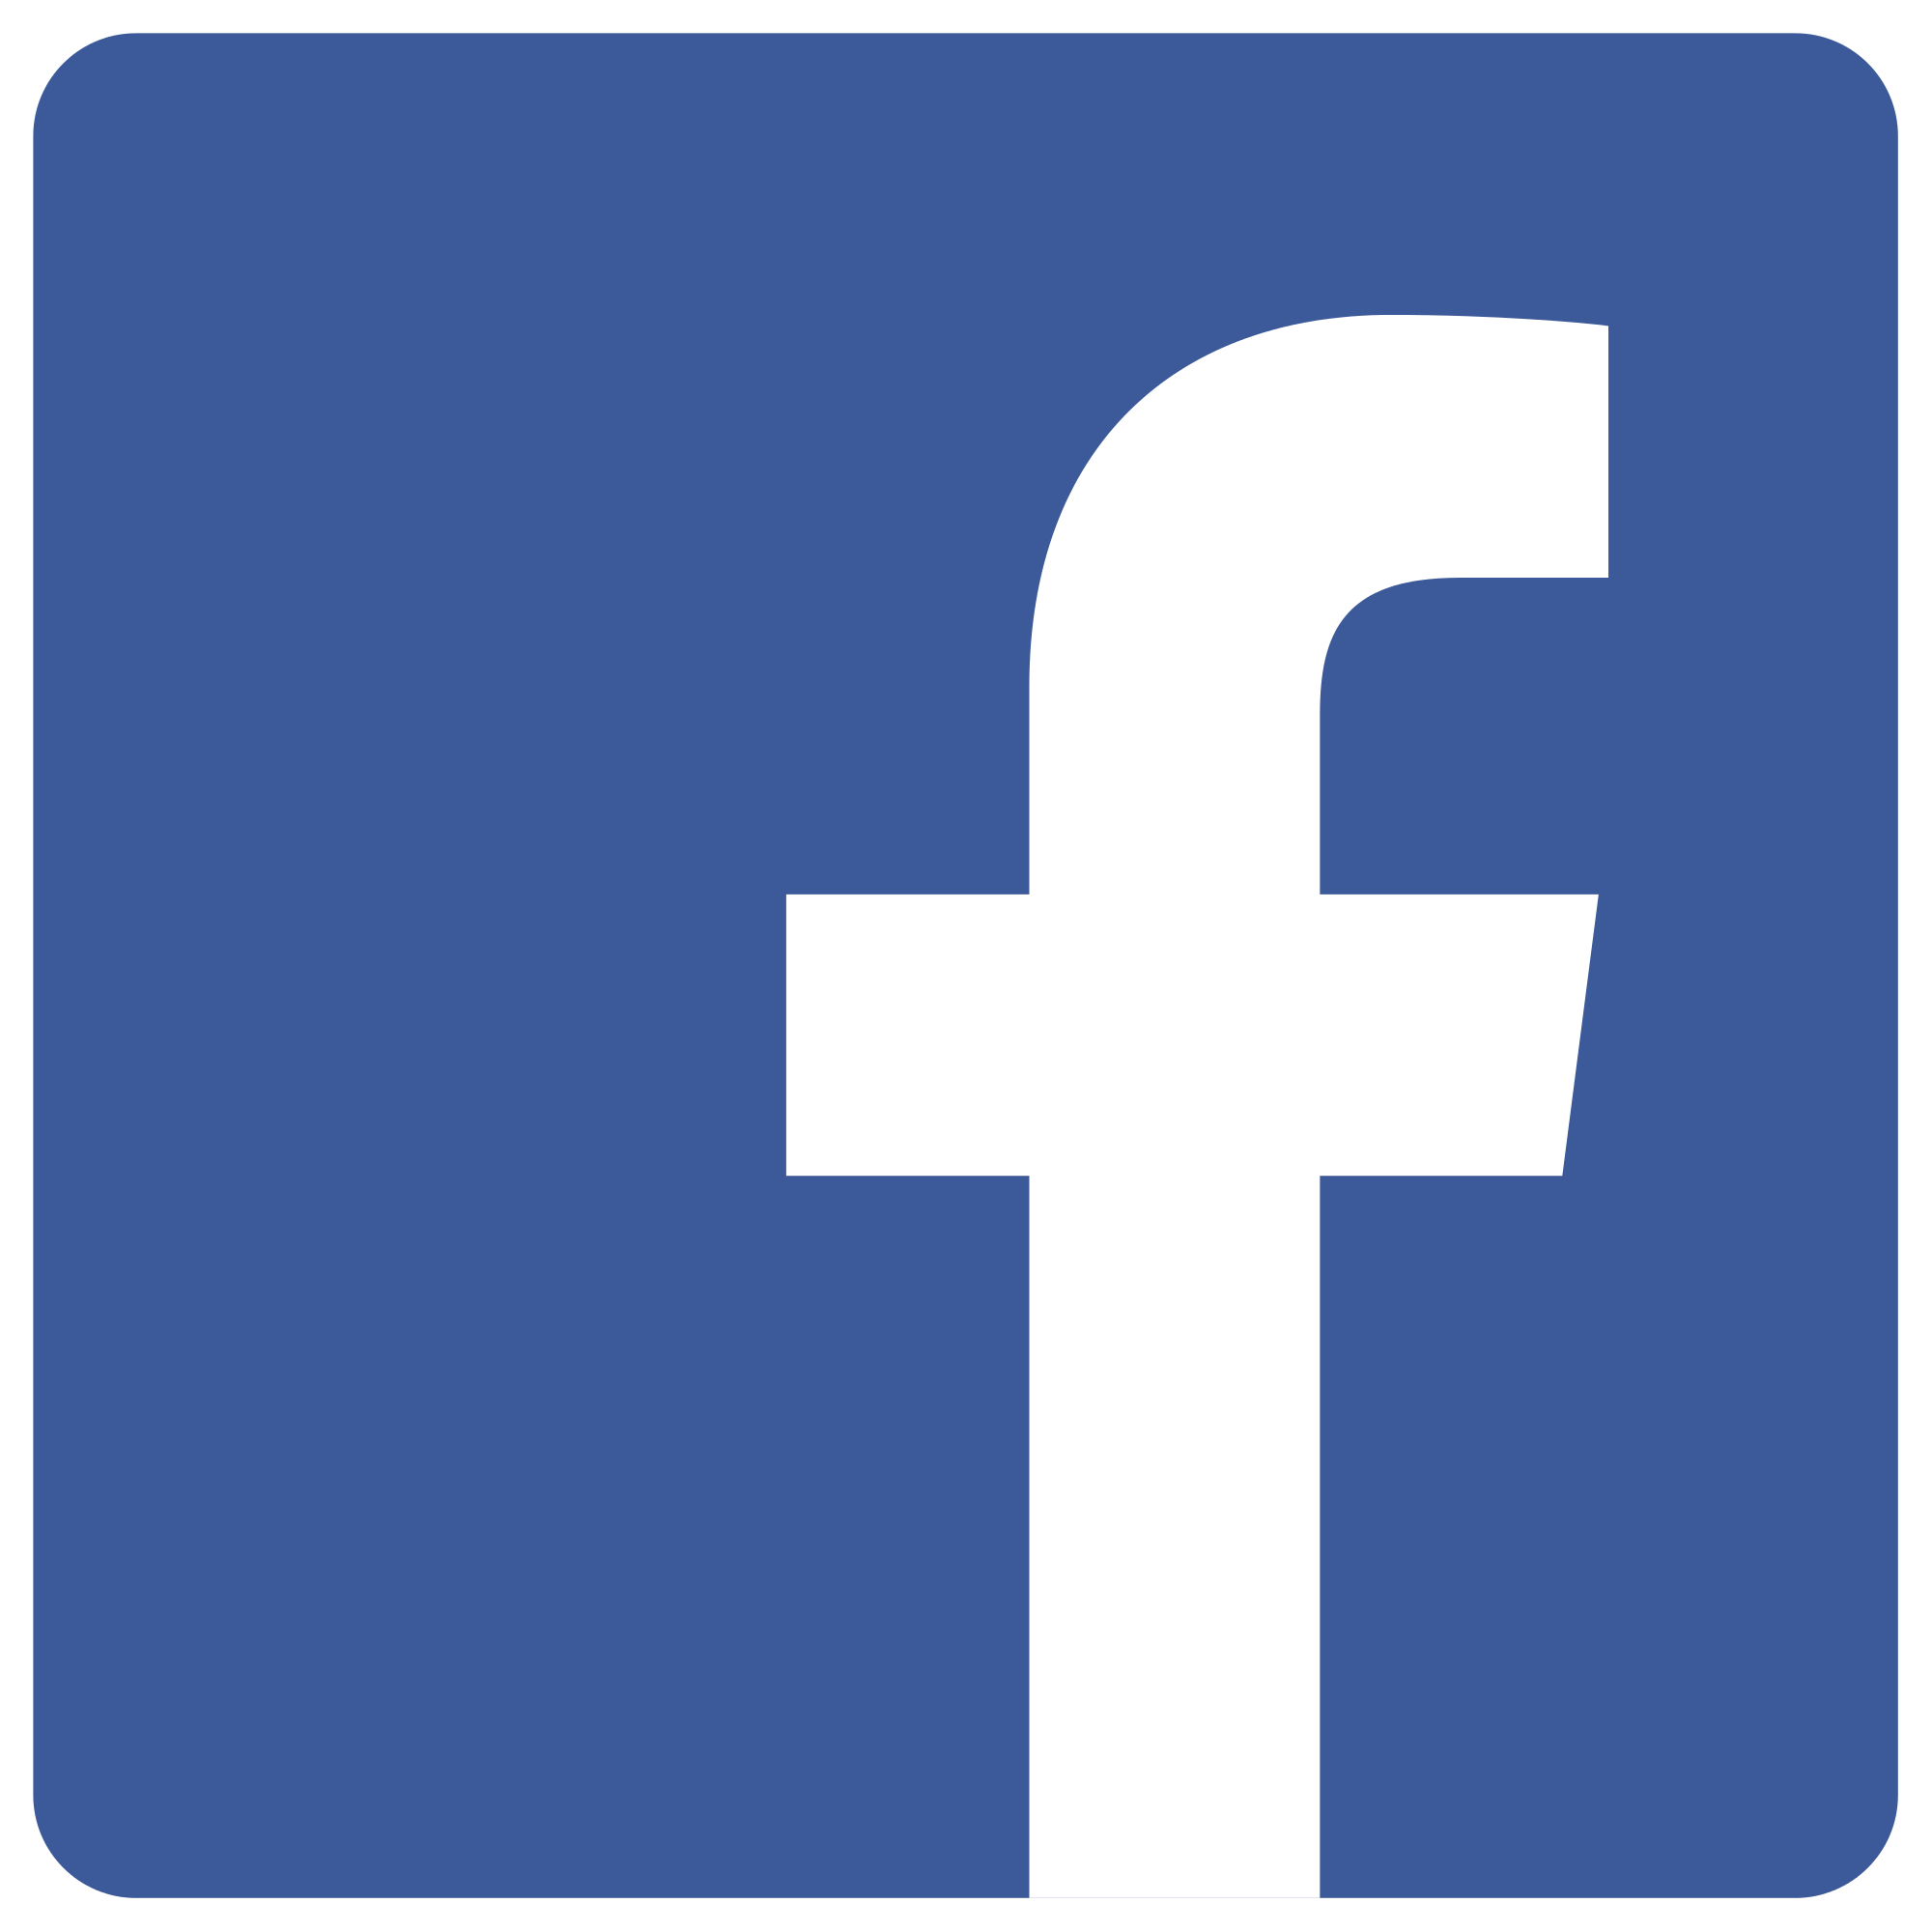 facebook-icoon-retina.png - 11,71 kB